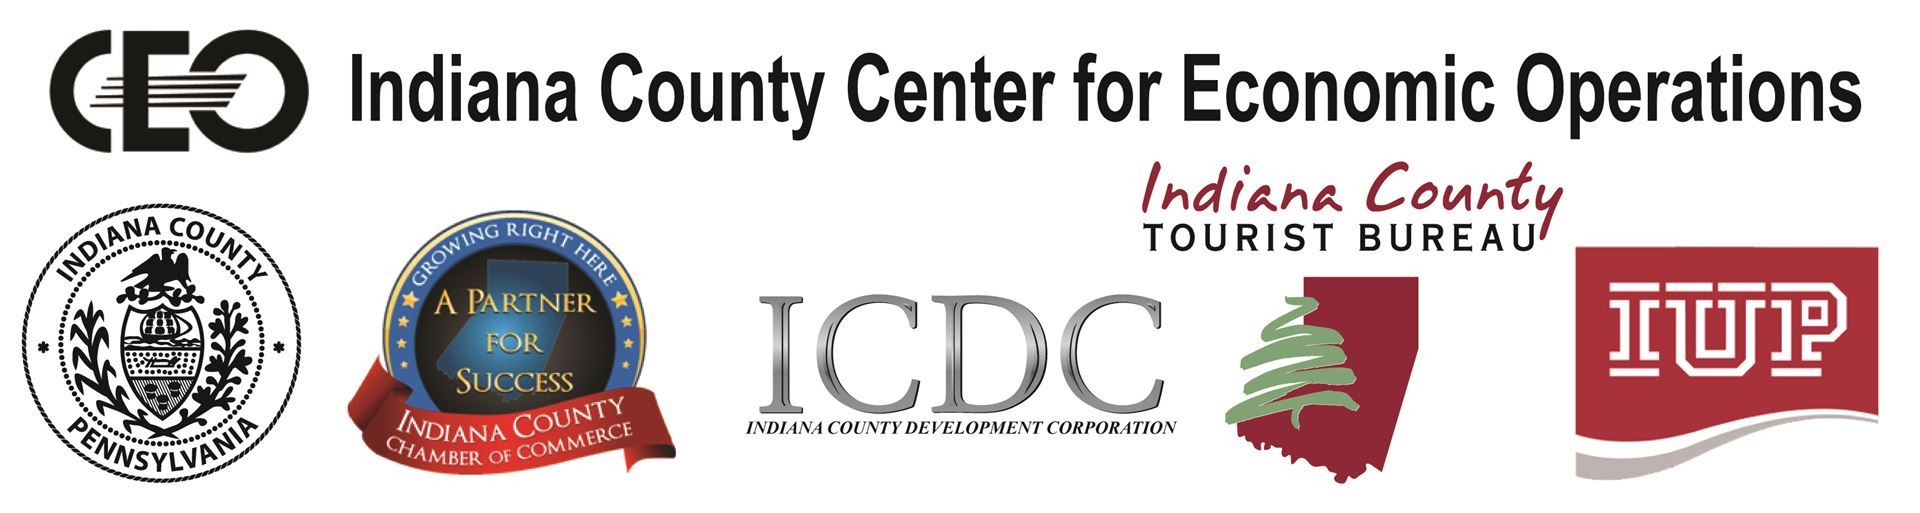 Indiana County Center for Economic Operations